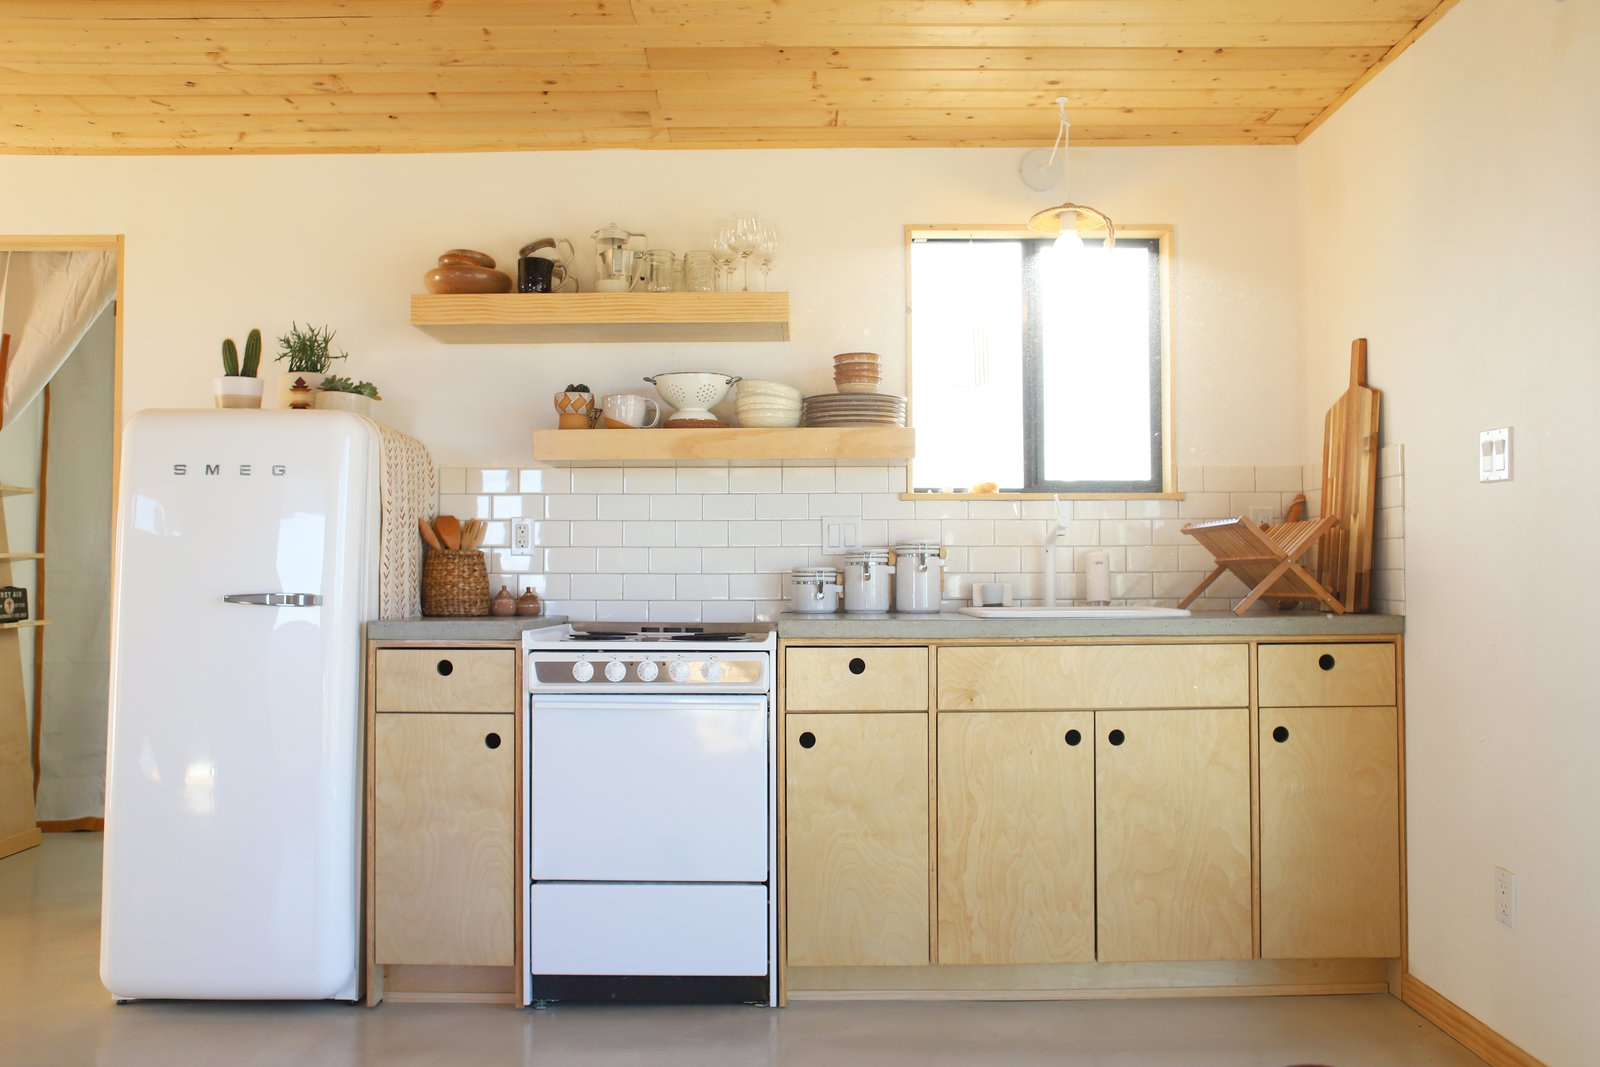 Kitchen, Range, Subway Tile Backsplashe, Drop In Sink, Refrigerator, Wood Cabinet, Wall Lighting, and Wall Oven The petite open kitchen is....  Photo 8 of 15 in A Couple Buy a Collapsing Cabin For $7K in Joshua Tree and Revamp it Into a Desert Oasis